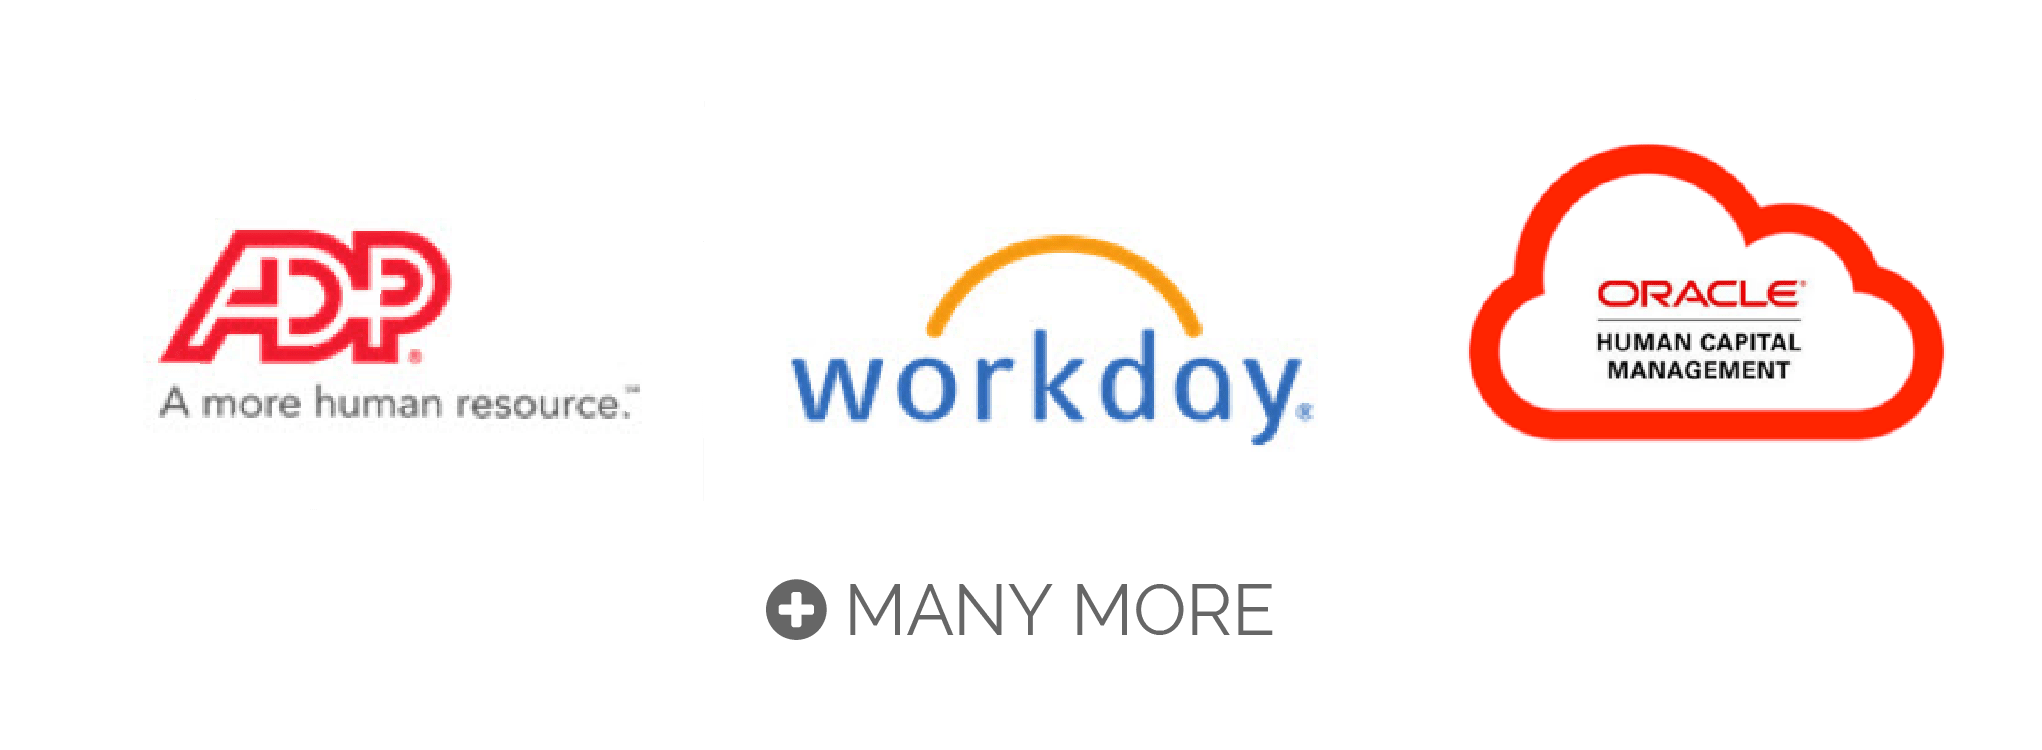 ADP-hubEngage integration, Workday-hubEngage integration, Oracle-hubEngage integration,